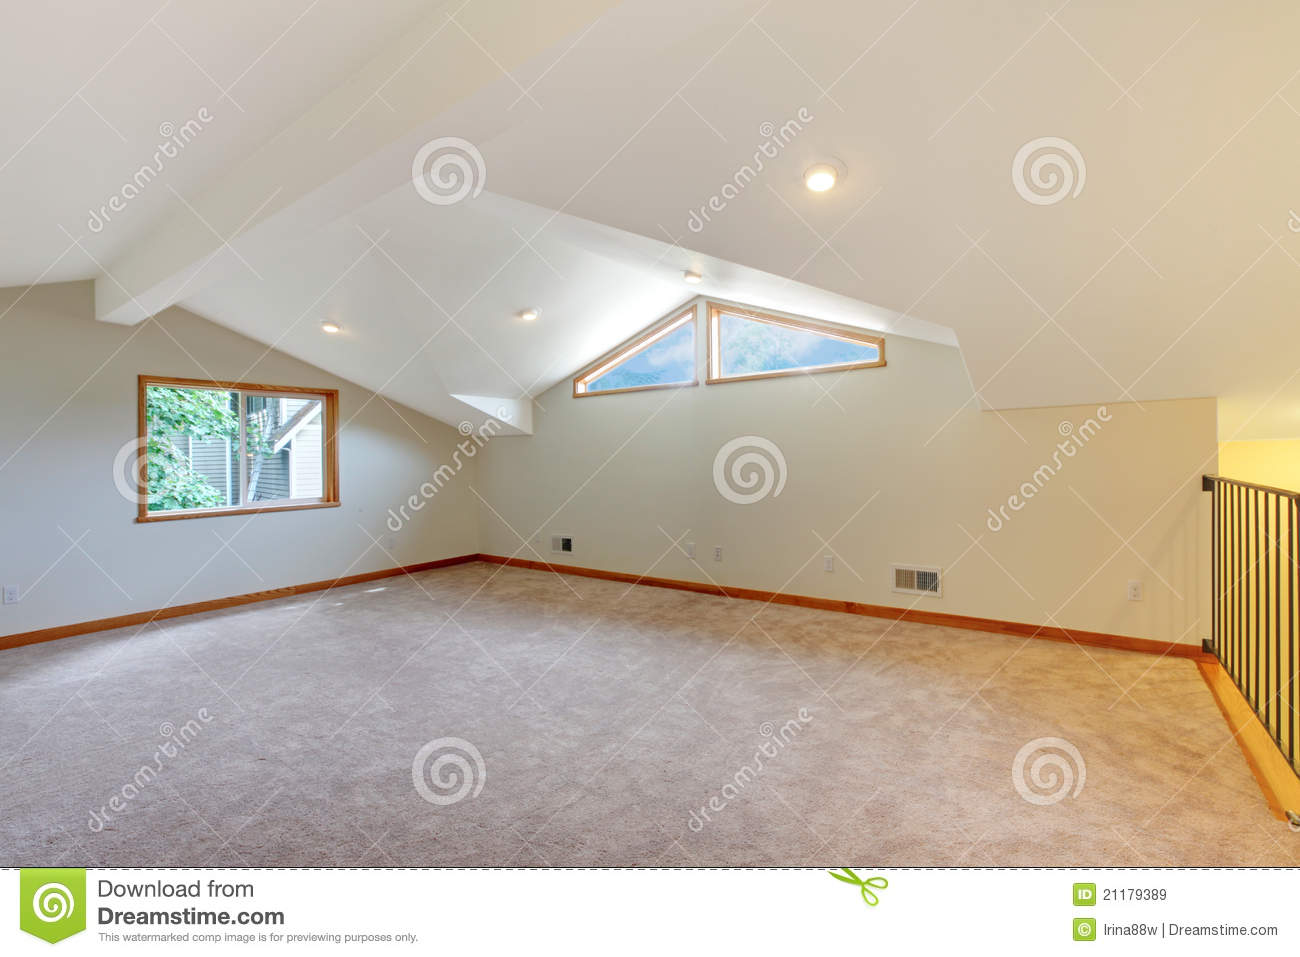 Large new room with beige carpet